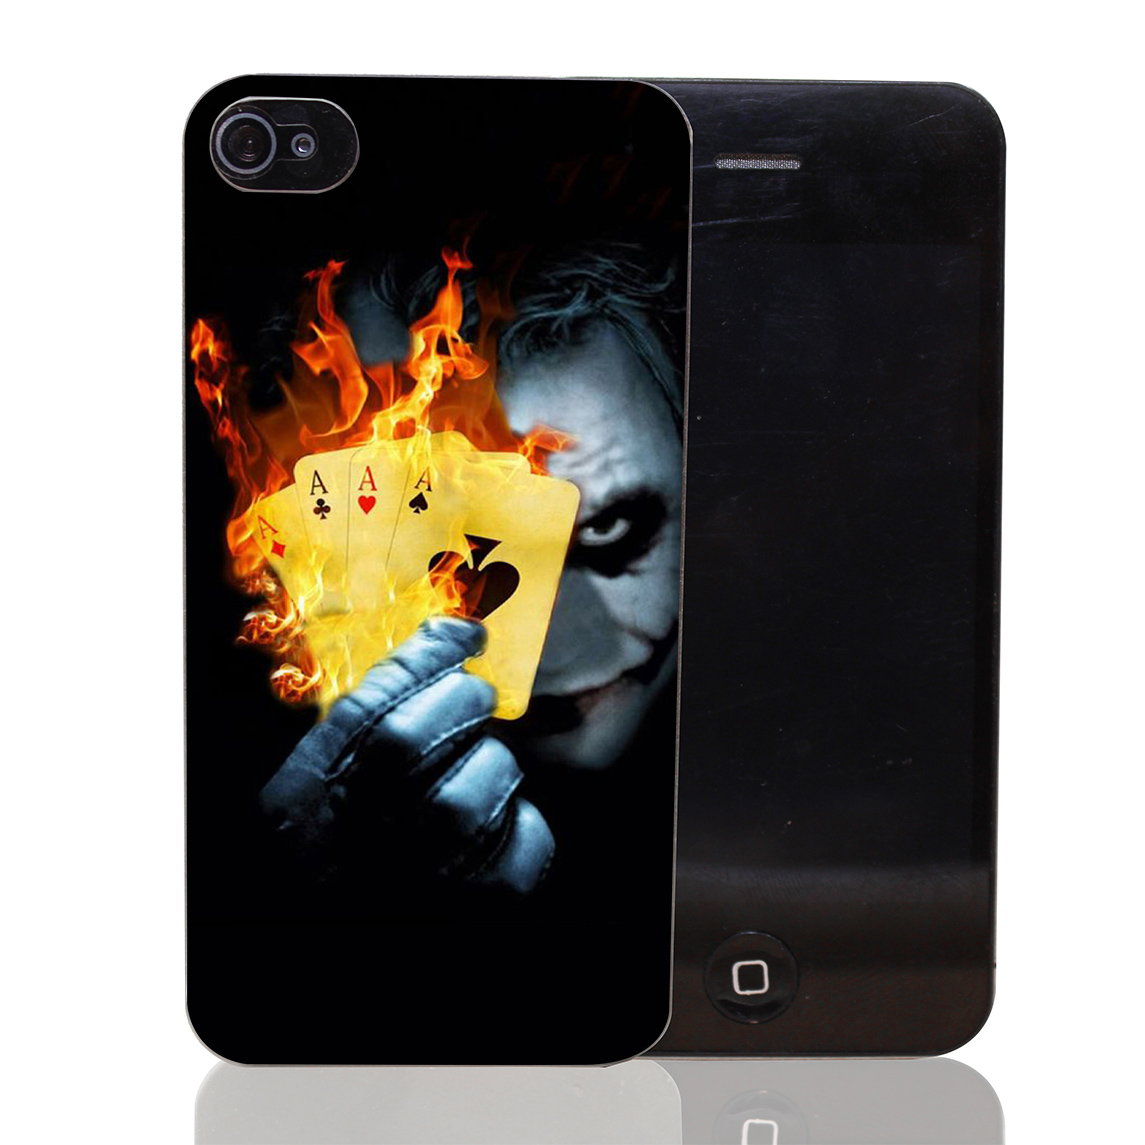 2723CA poker joker Hard Transparent Case Cover for iPhone 4 4s 5 5s 5c SE 6 6s Plus Thin Style